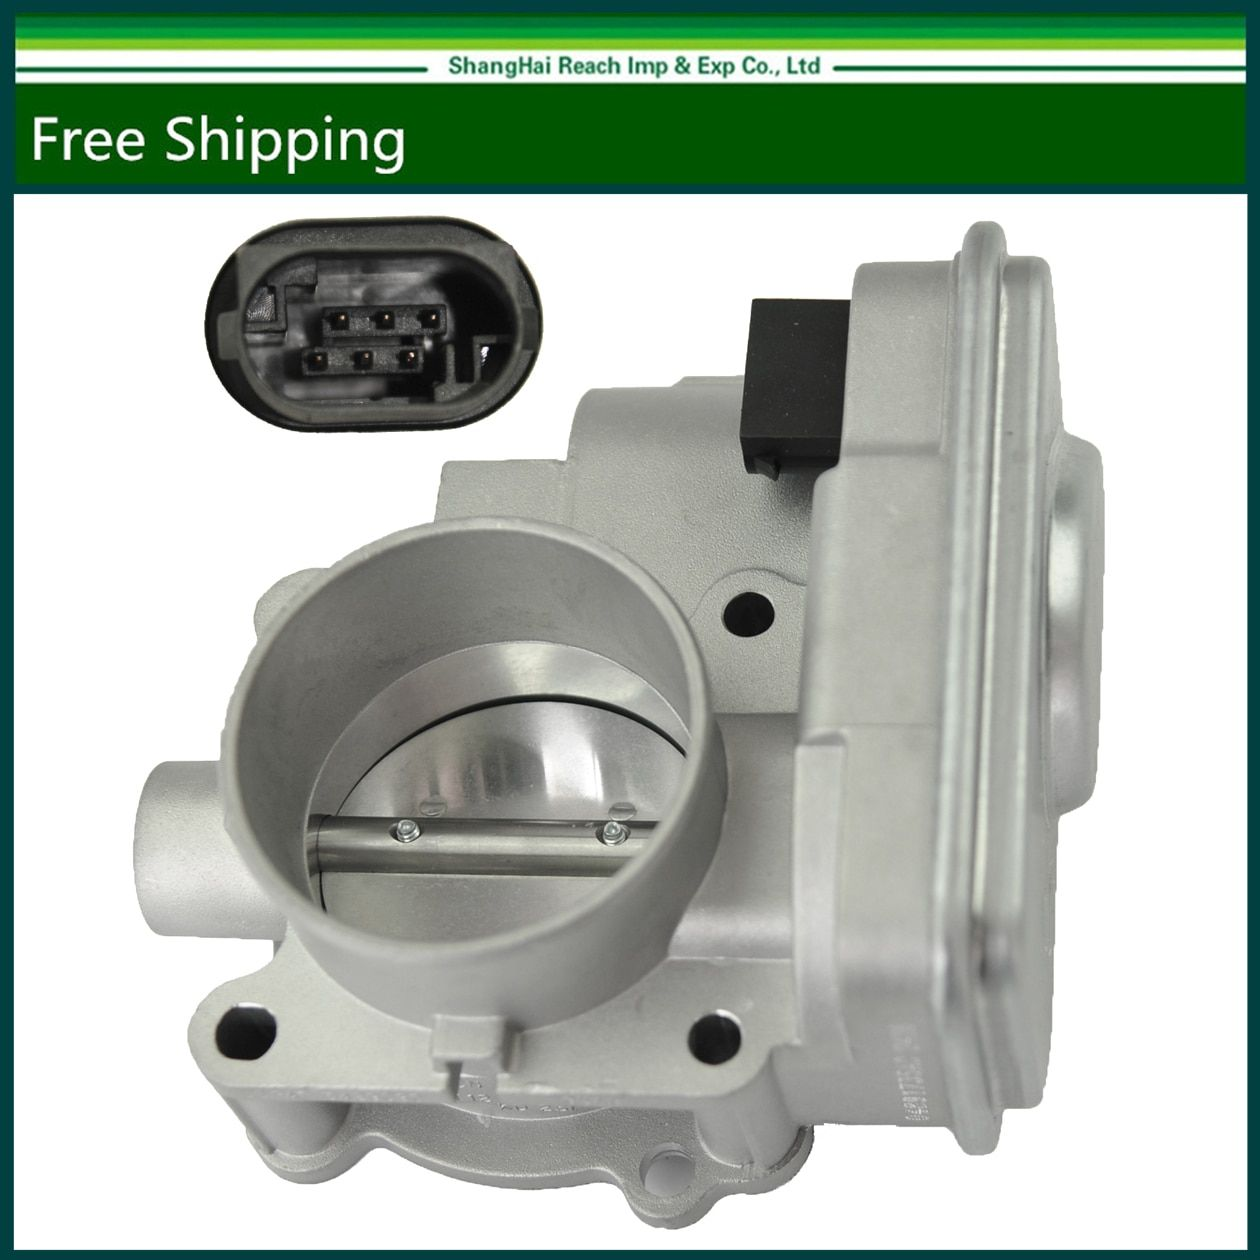 e2c Throttle Body For Dodge Jeep Chrysler 1.8L 2.0L 2.4L Compass Caliber OE#:4891735AC,4891735AB, 4891735AA, 4891735